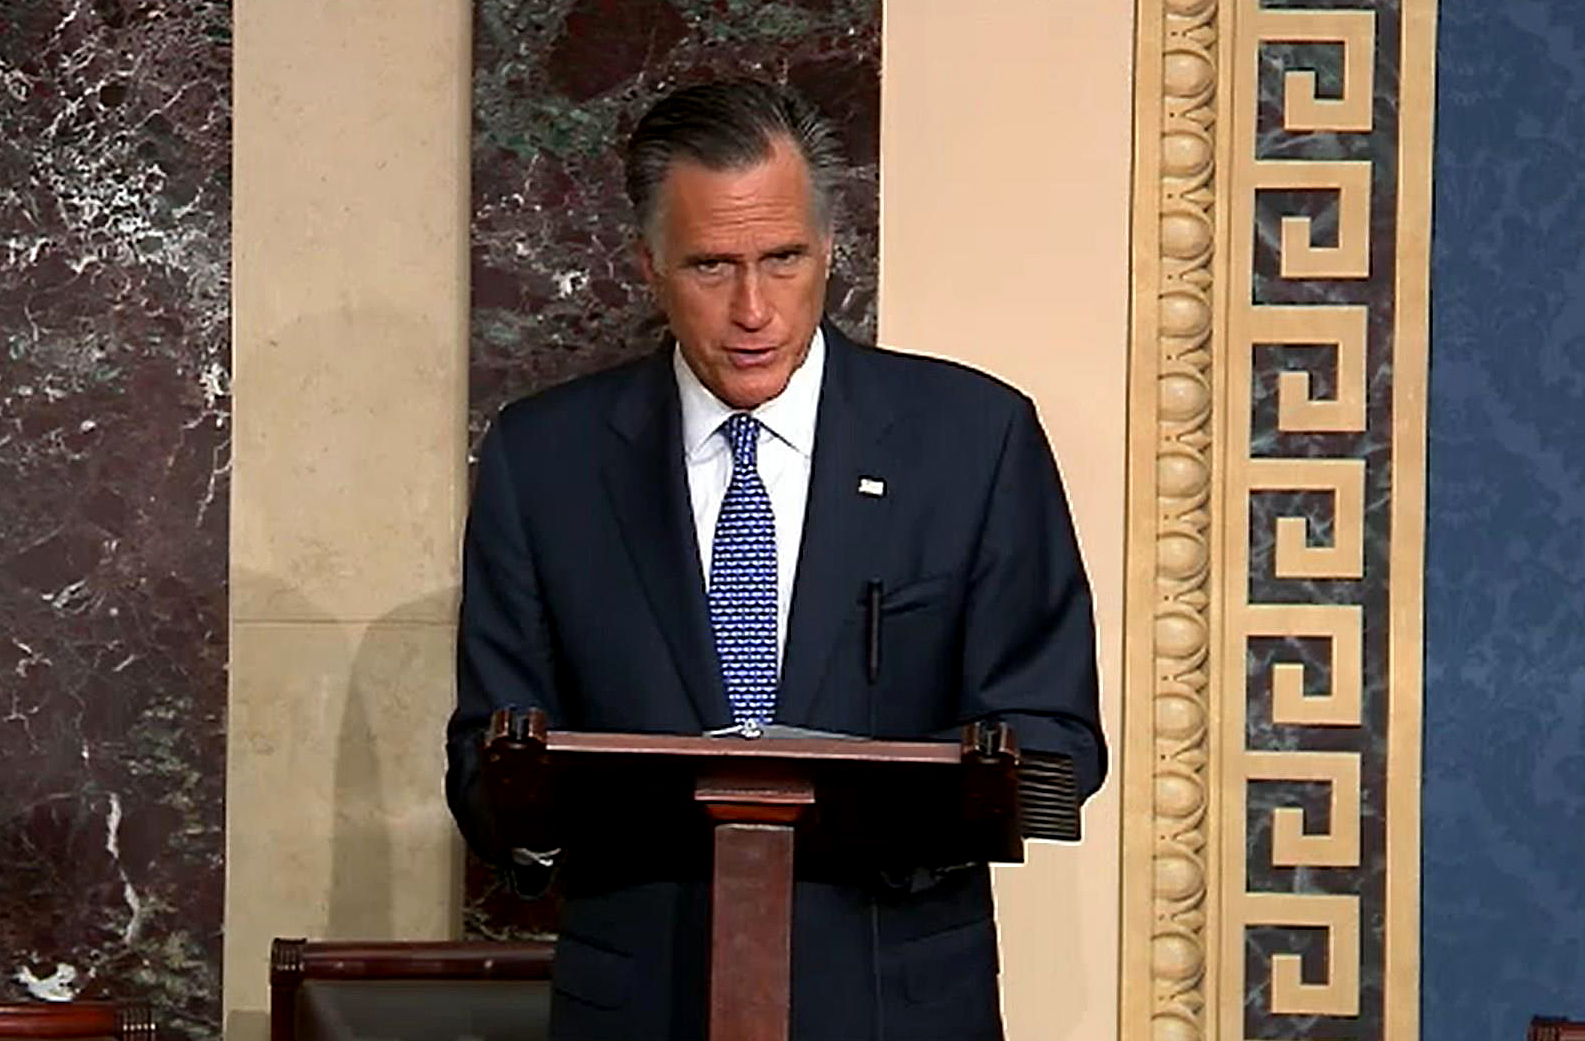 Mitt Romney is the first U.S. senator in history to vote to remove a president from his own party